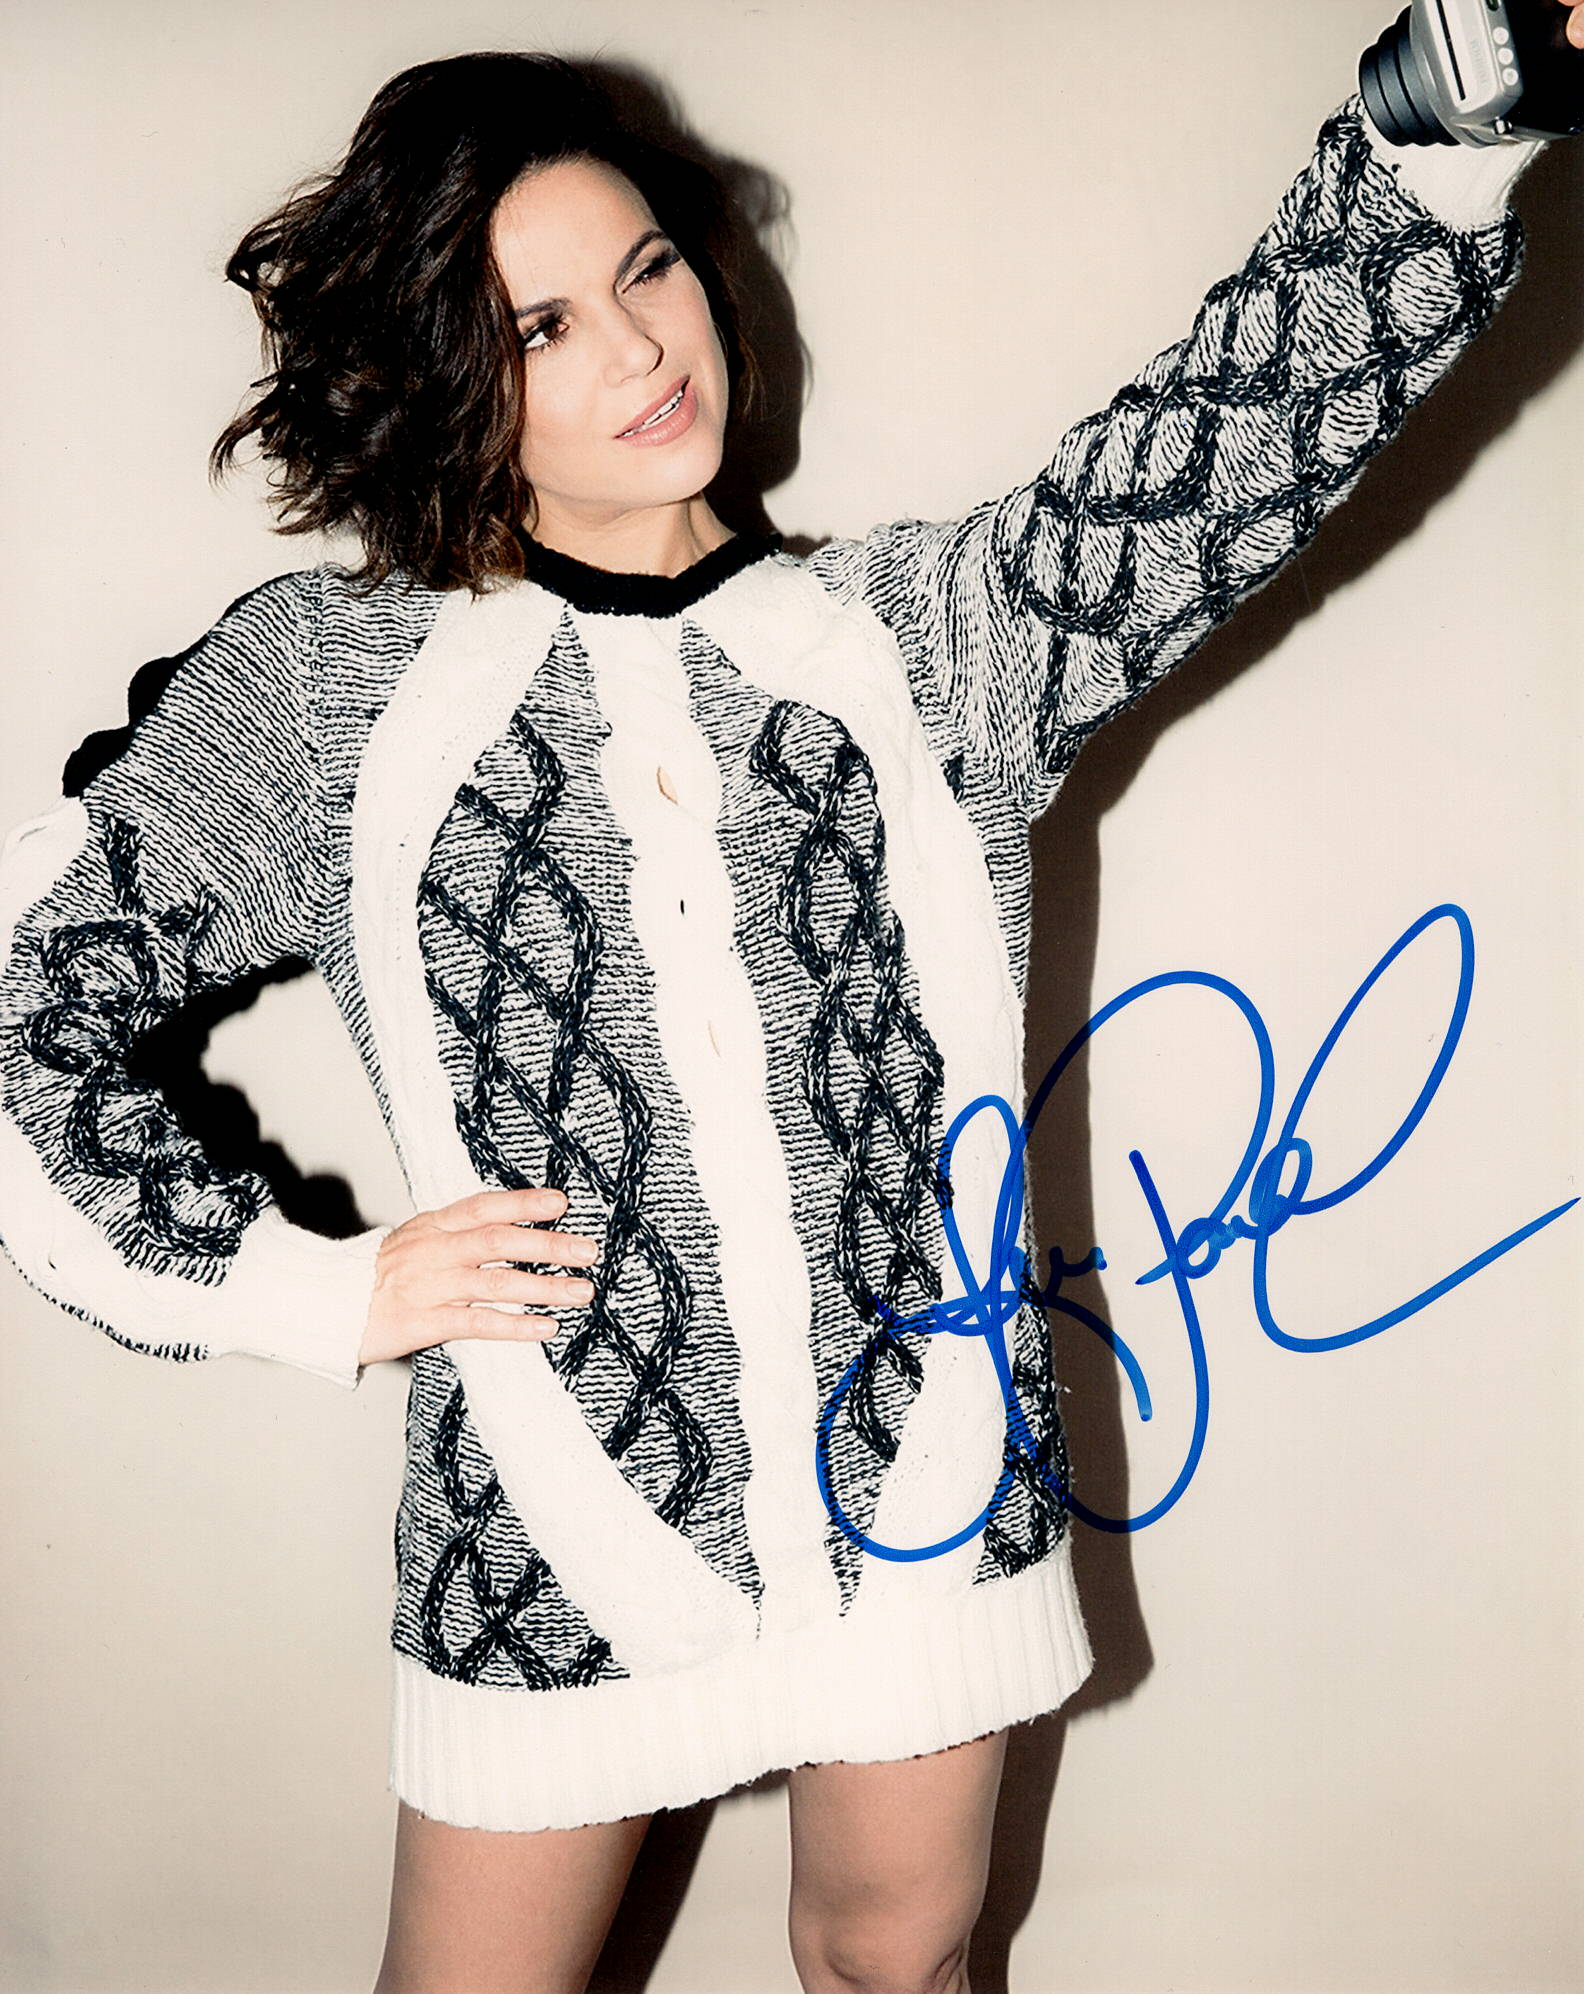 Lana Parrilla Once Upon A Time Sexy Signed Autograph 8x10 Photo - Outlaw Hobbies Authentic Autographs